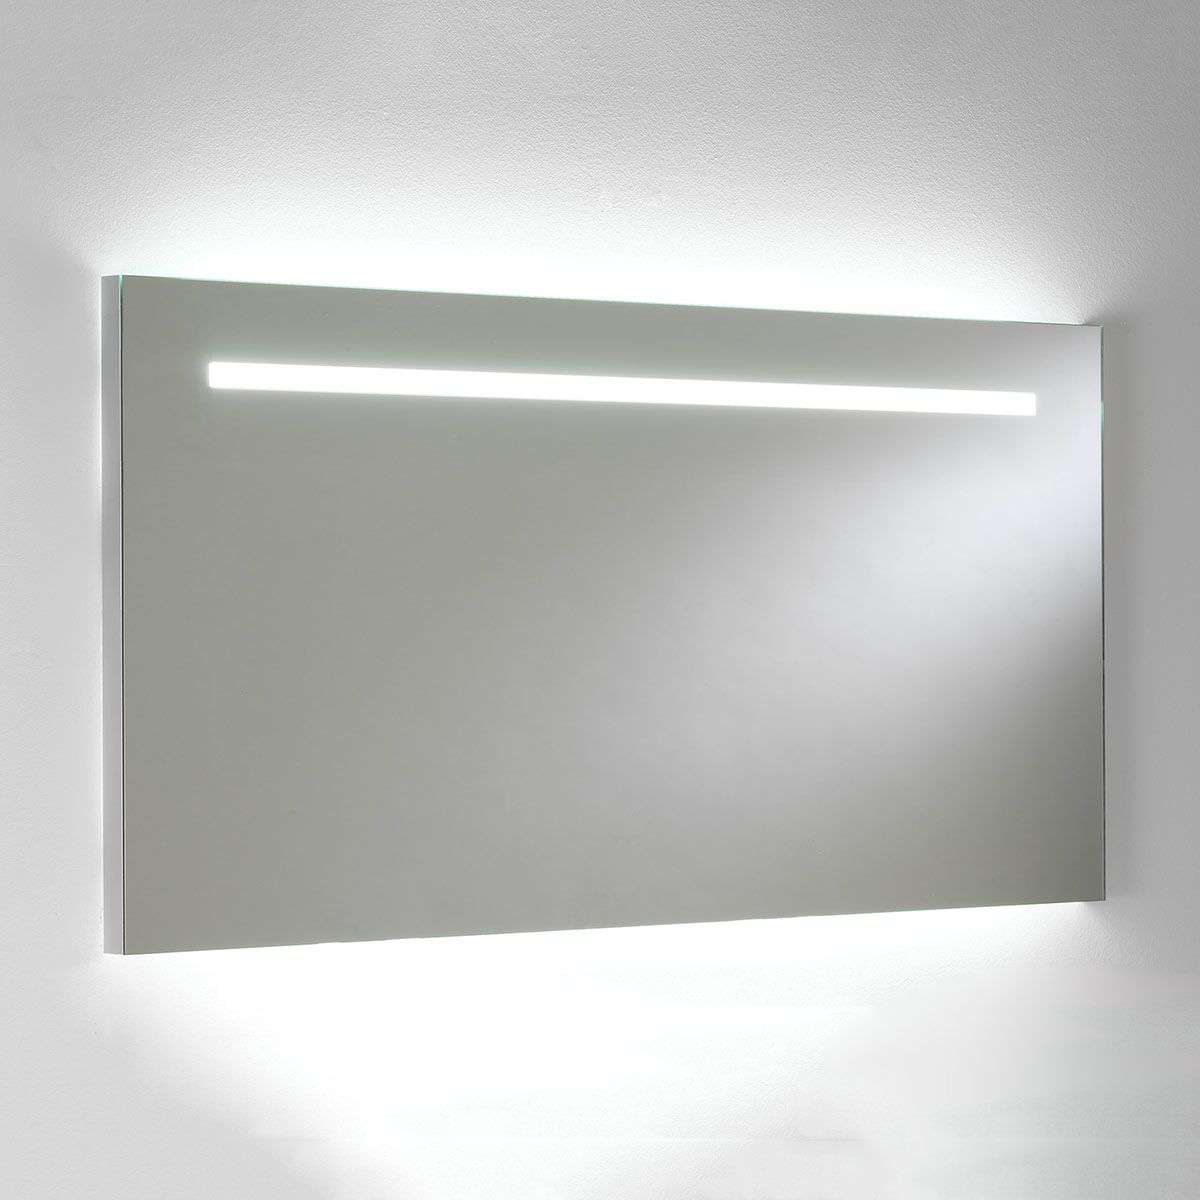 Flair Mirror with Integrated Lighting-1020056-32